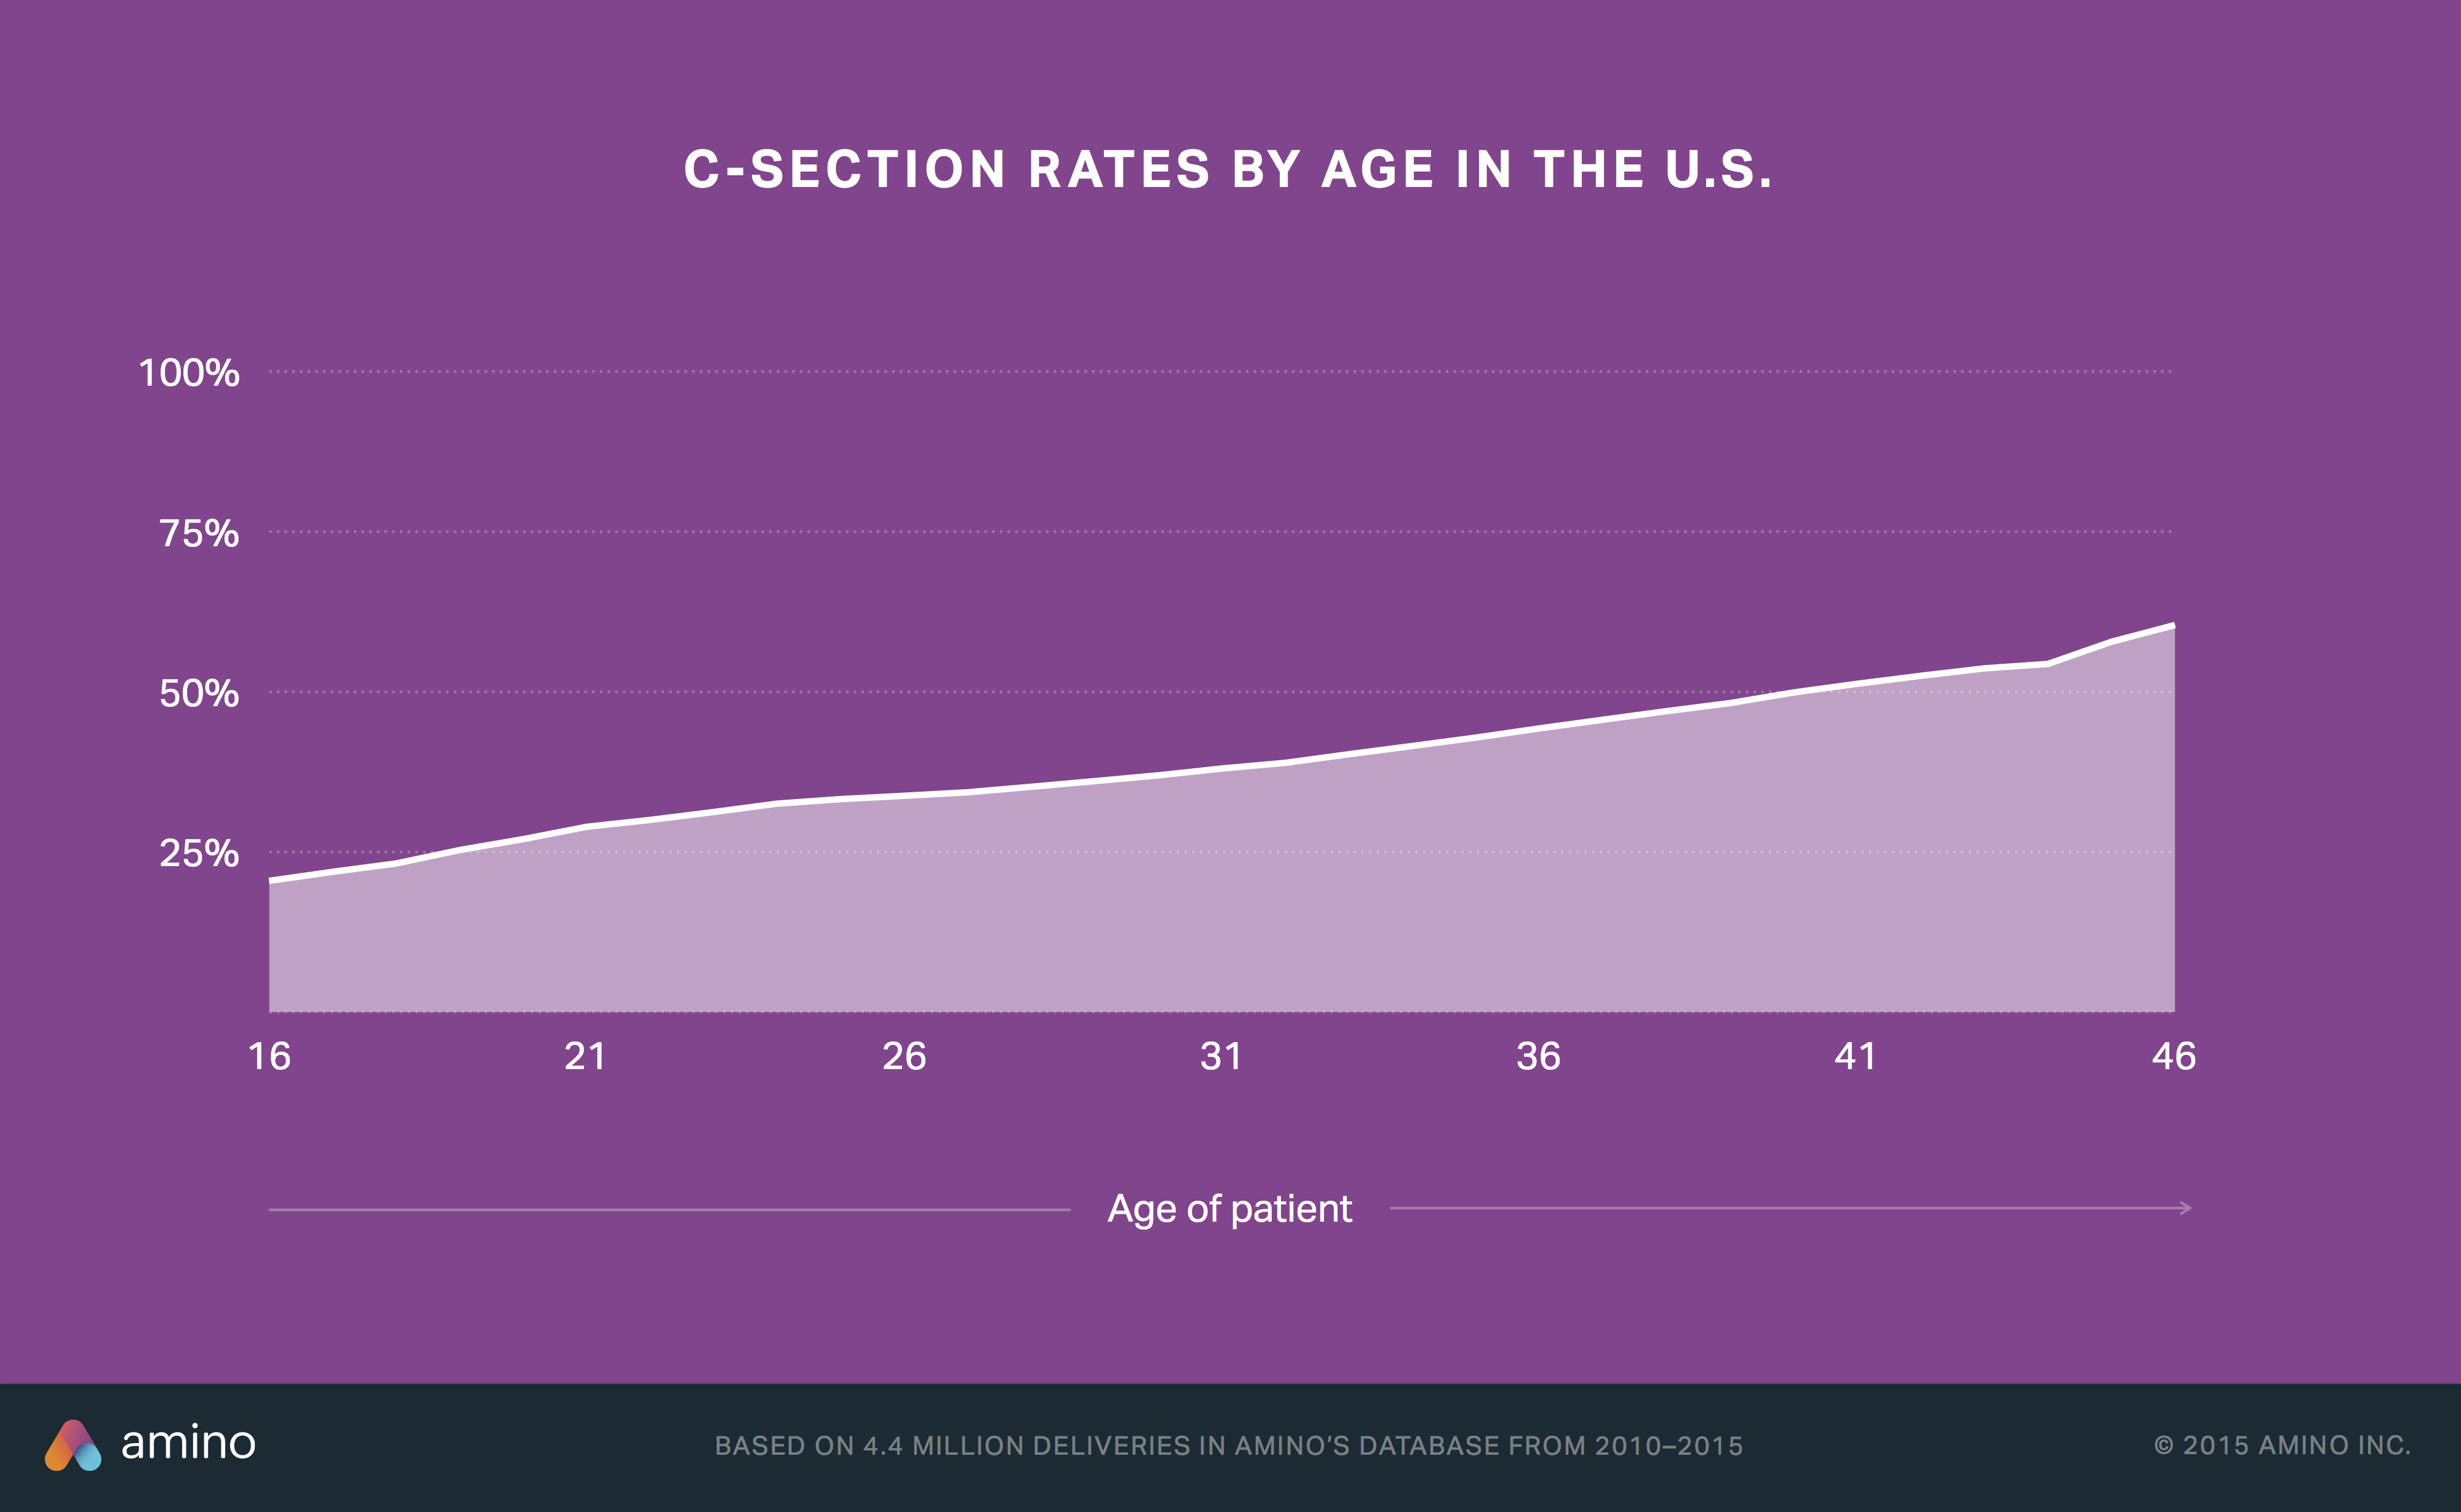 C-section rates by age